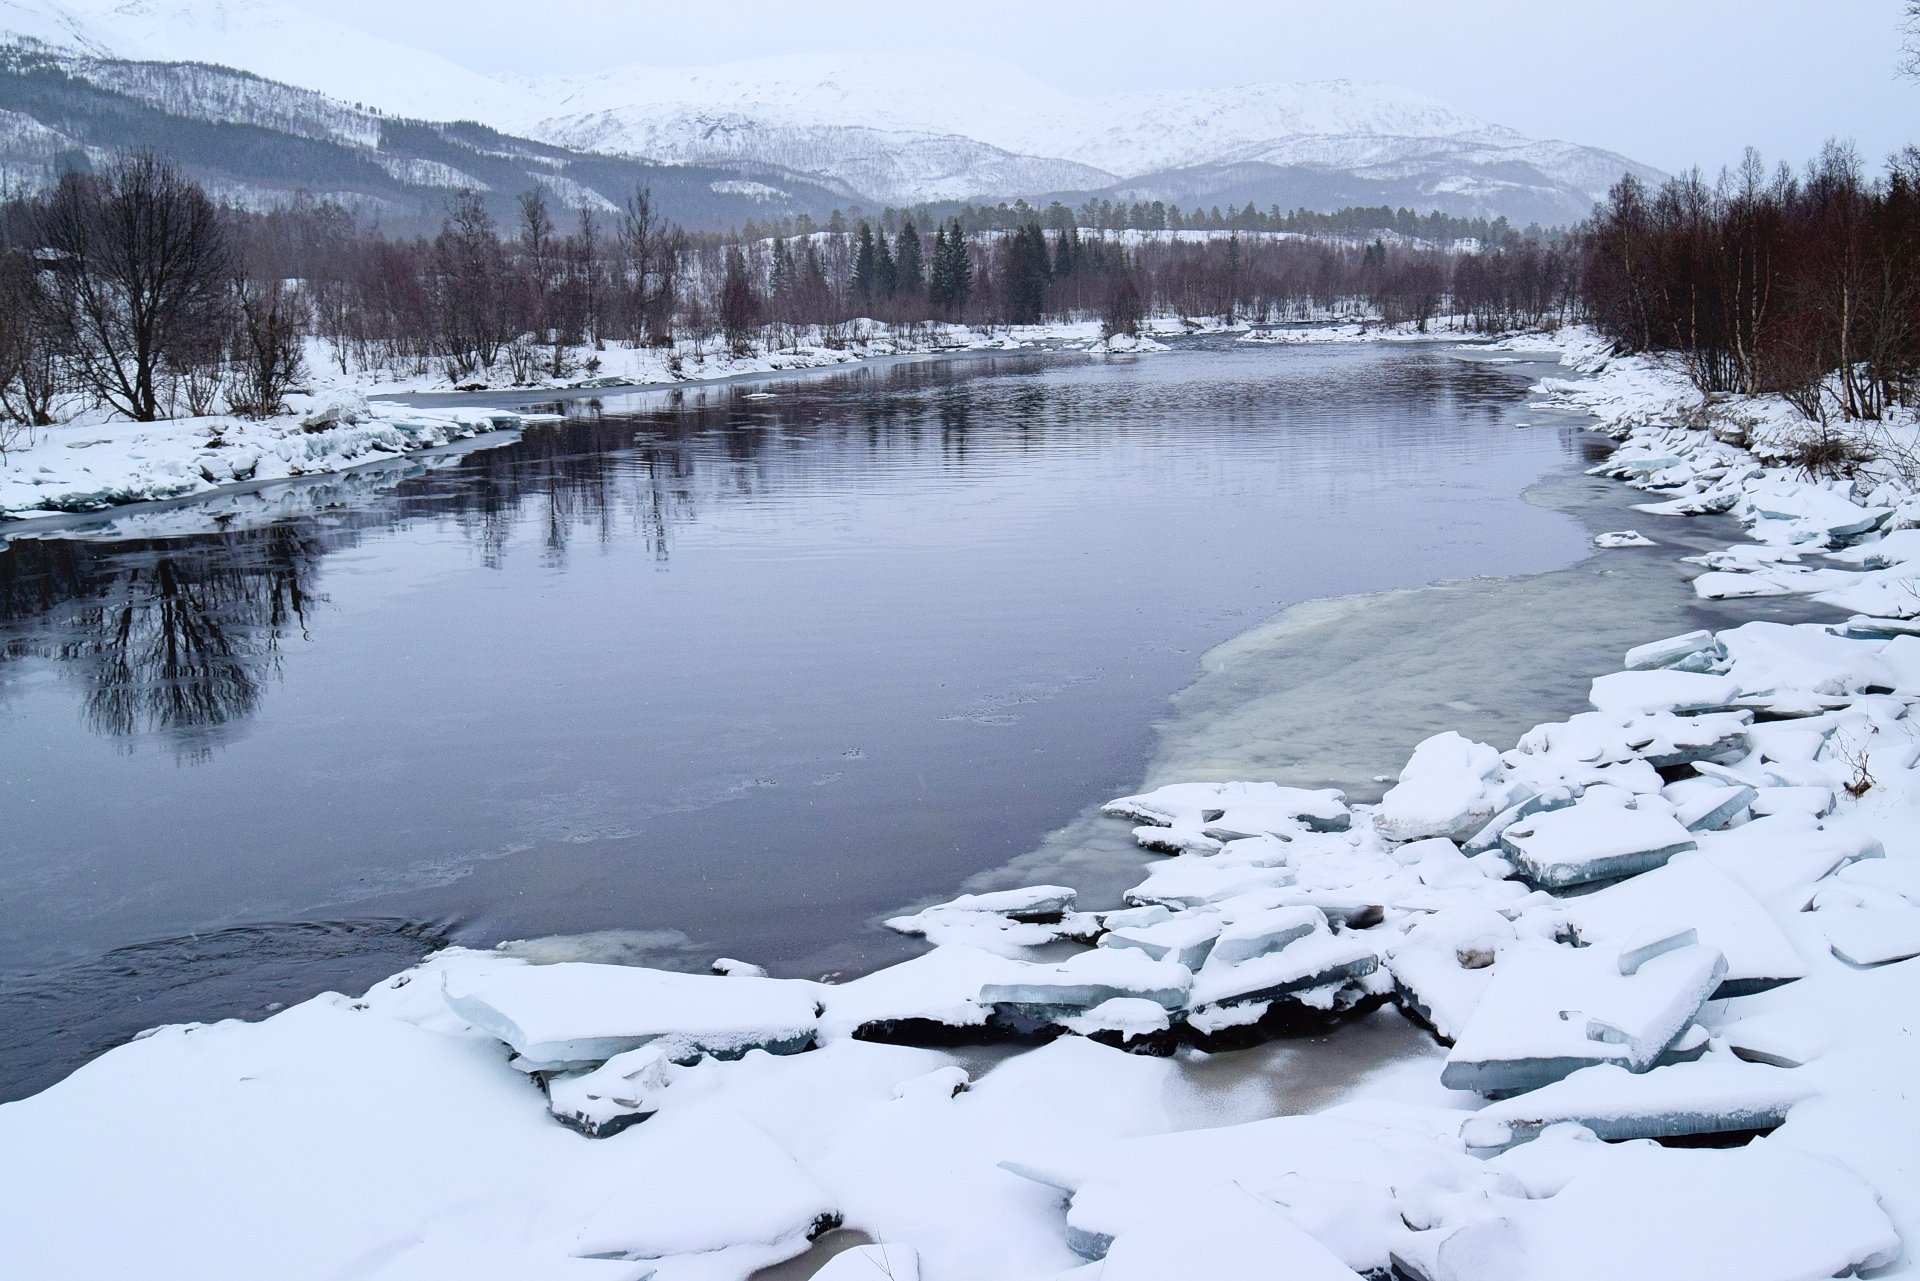 Lakselv River in Fauske municipality